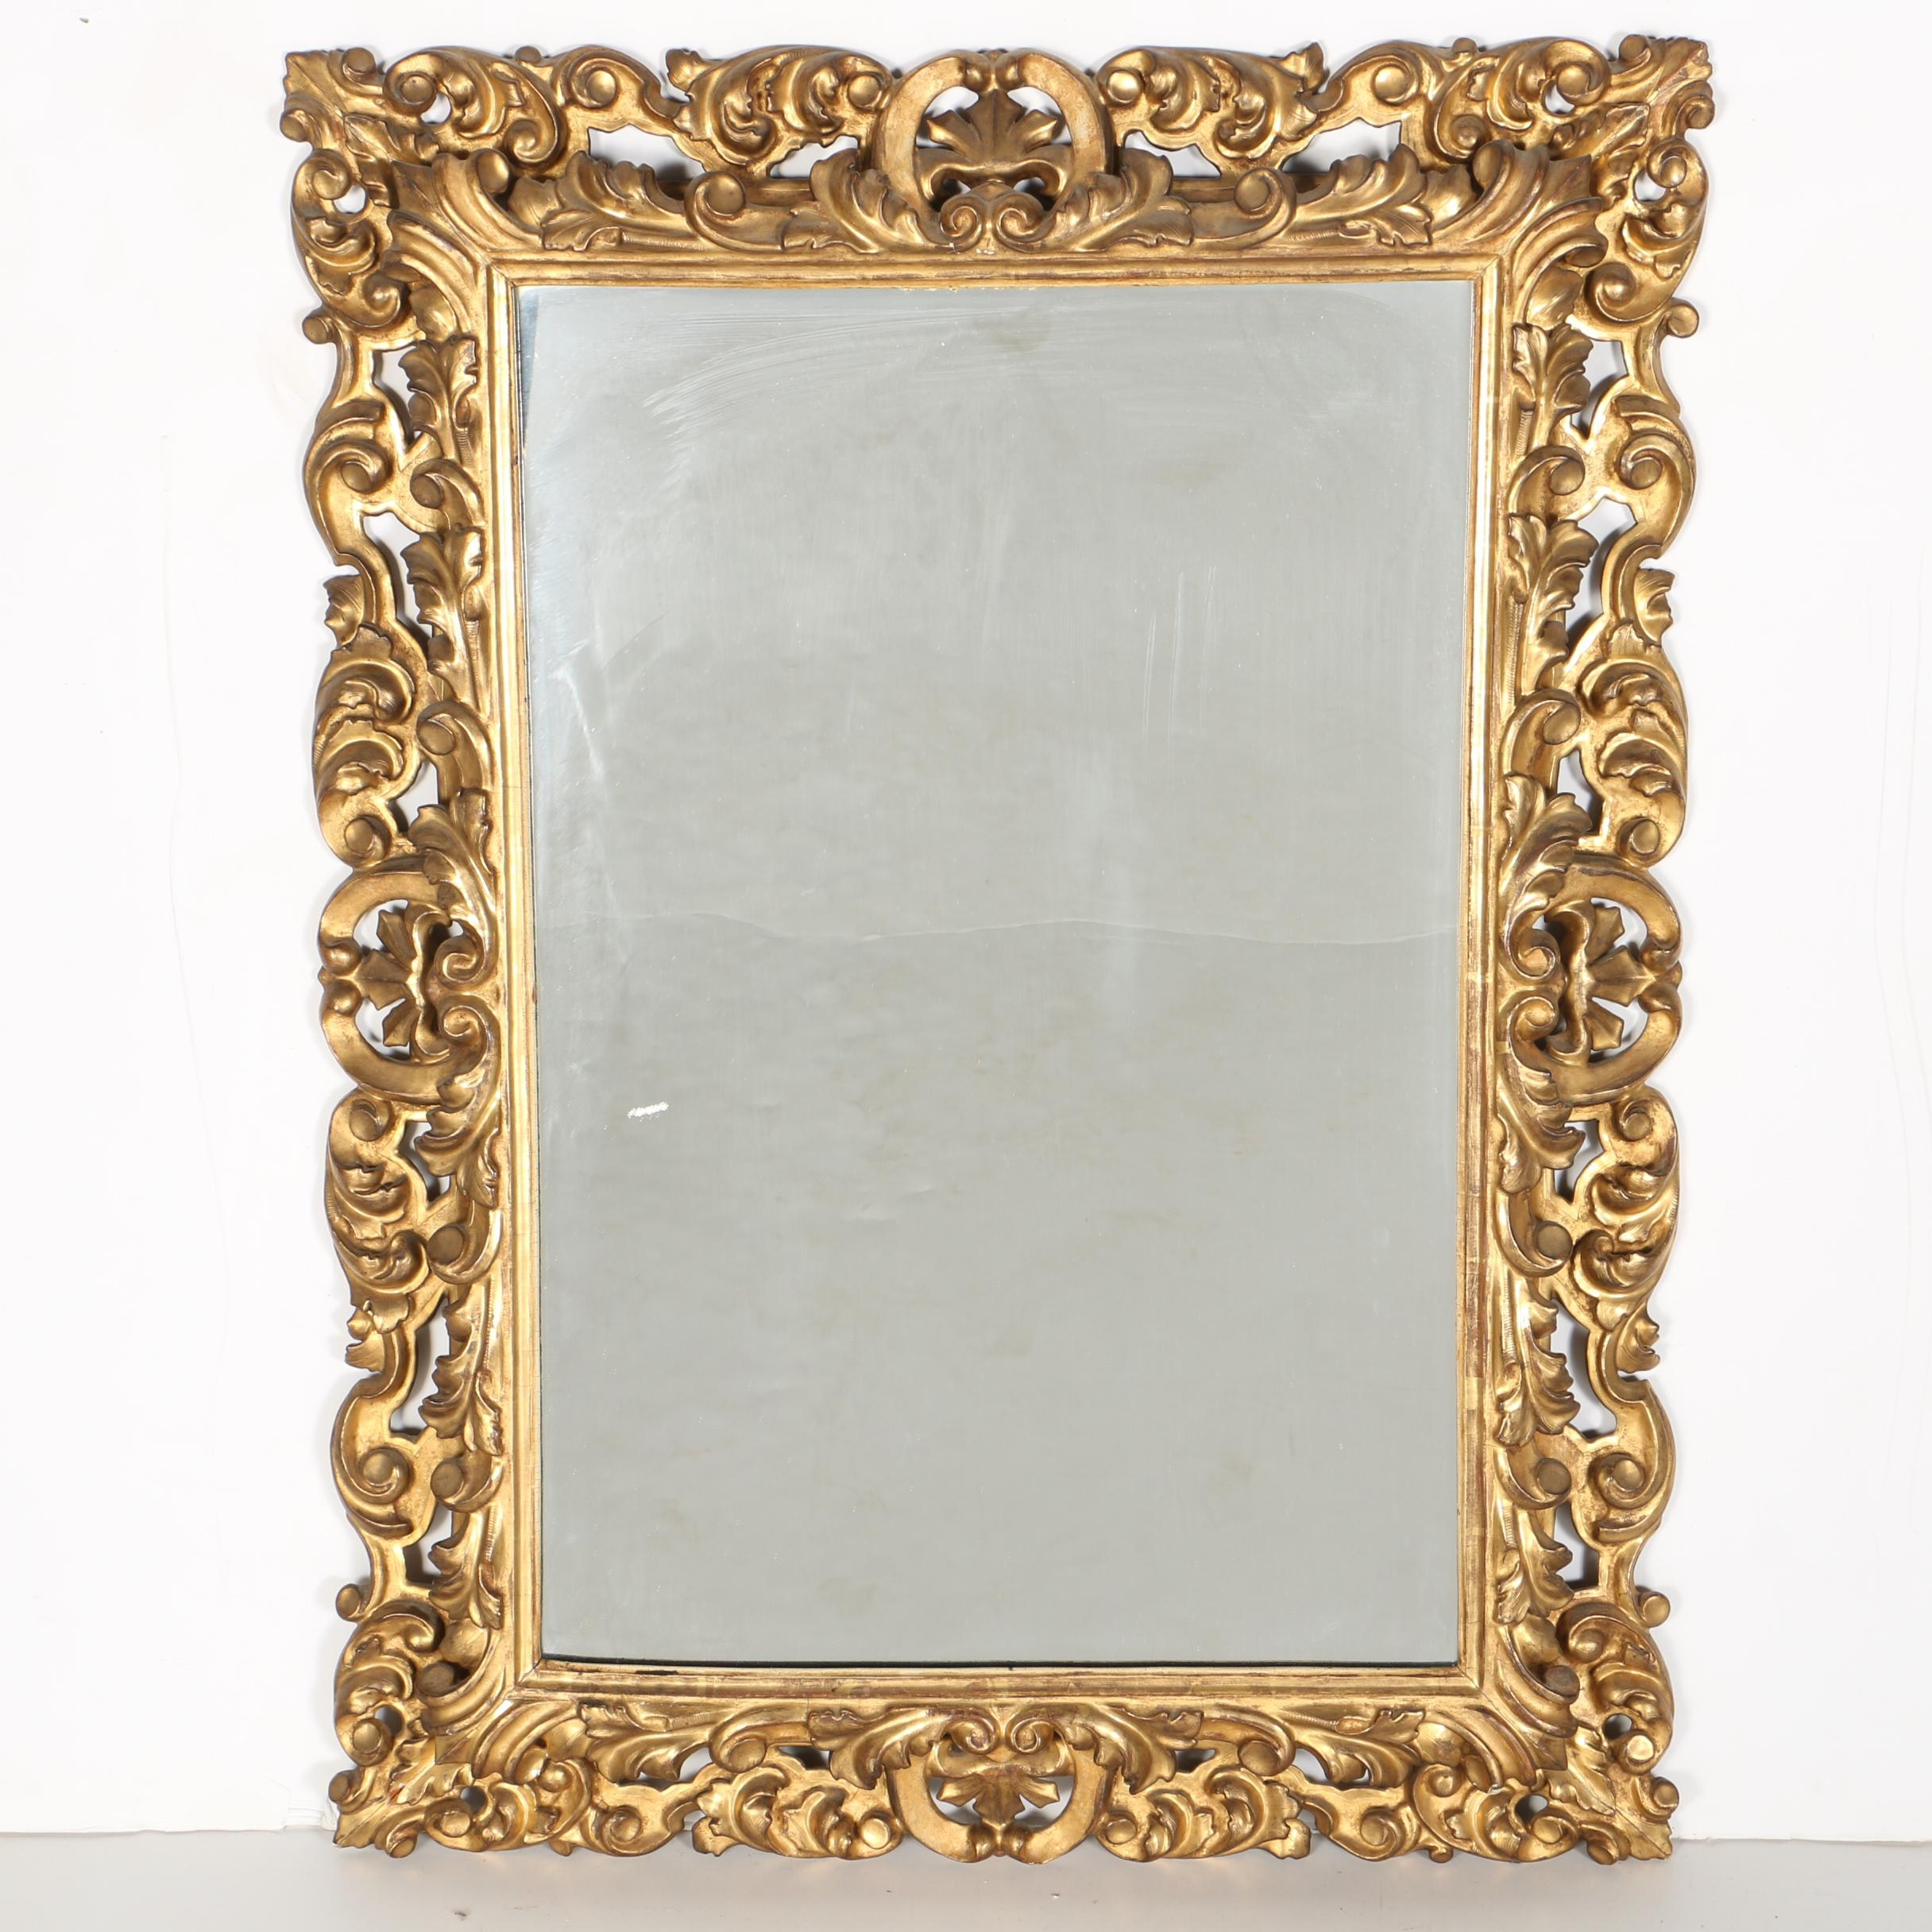 Ornate Wood and Gesso Mirror